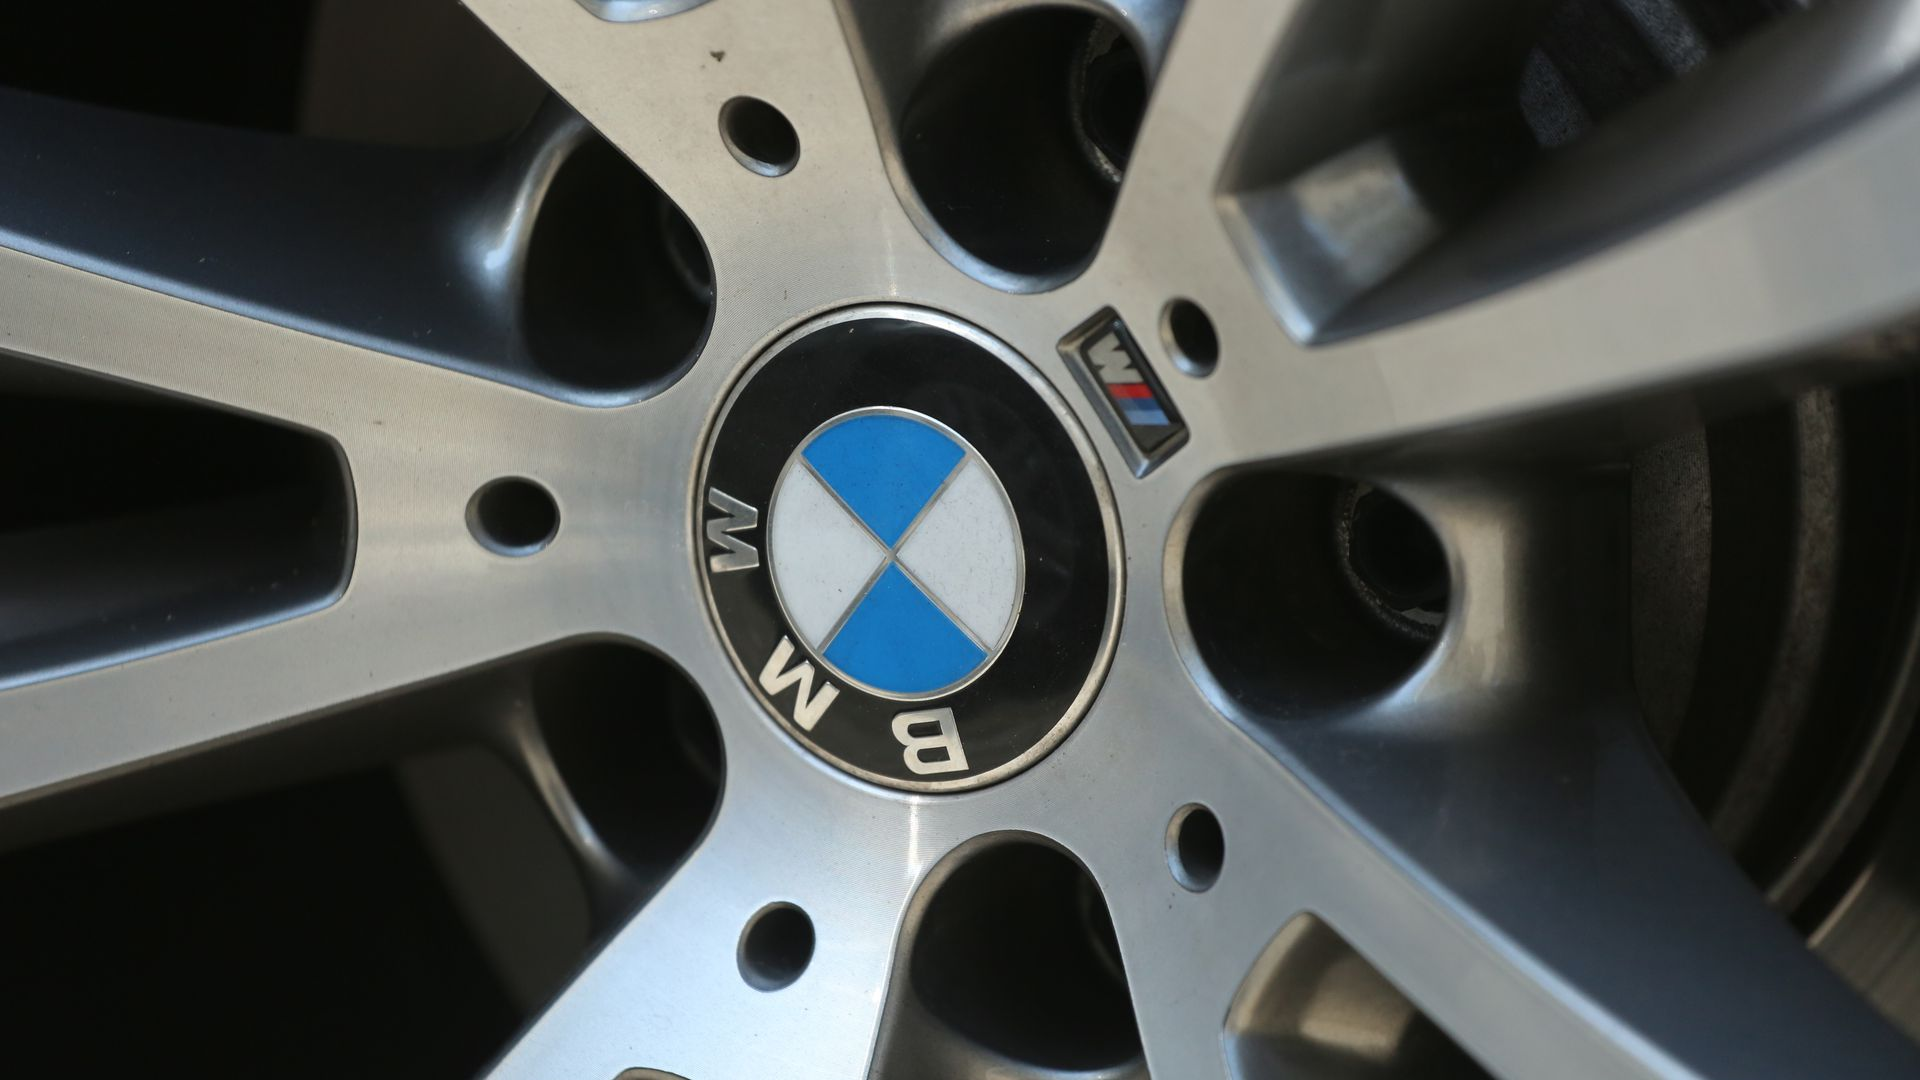 BMW weel and logo.